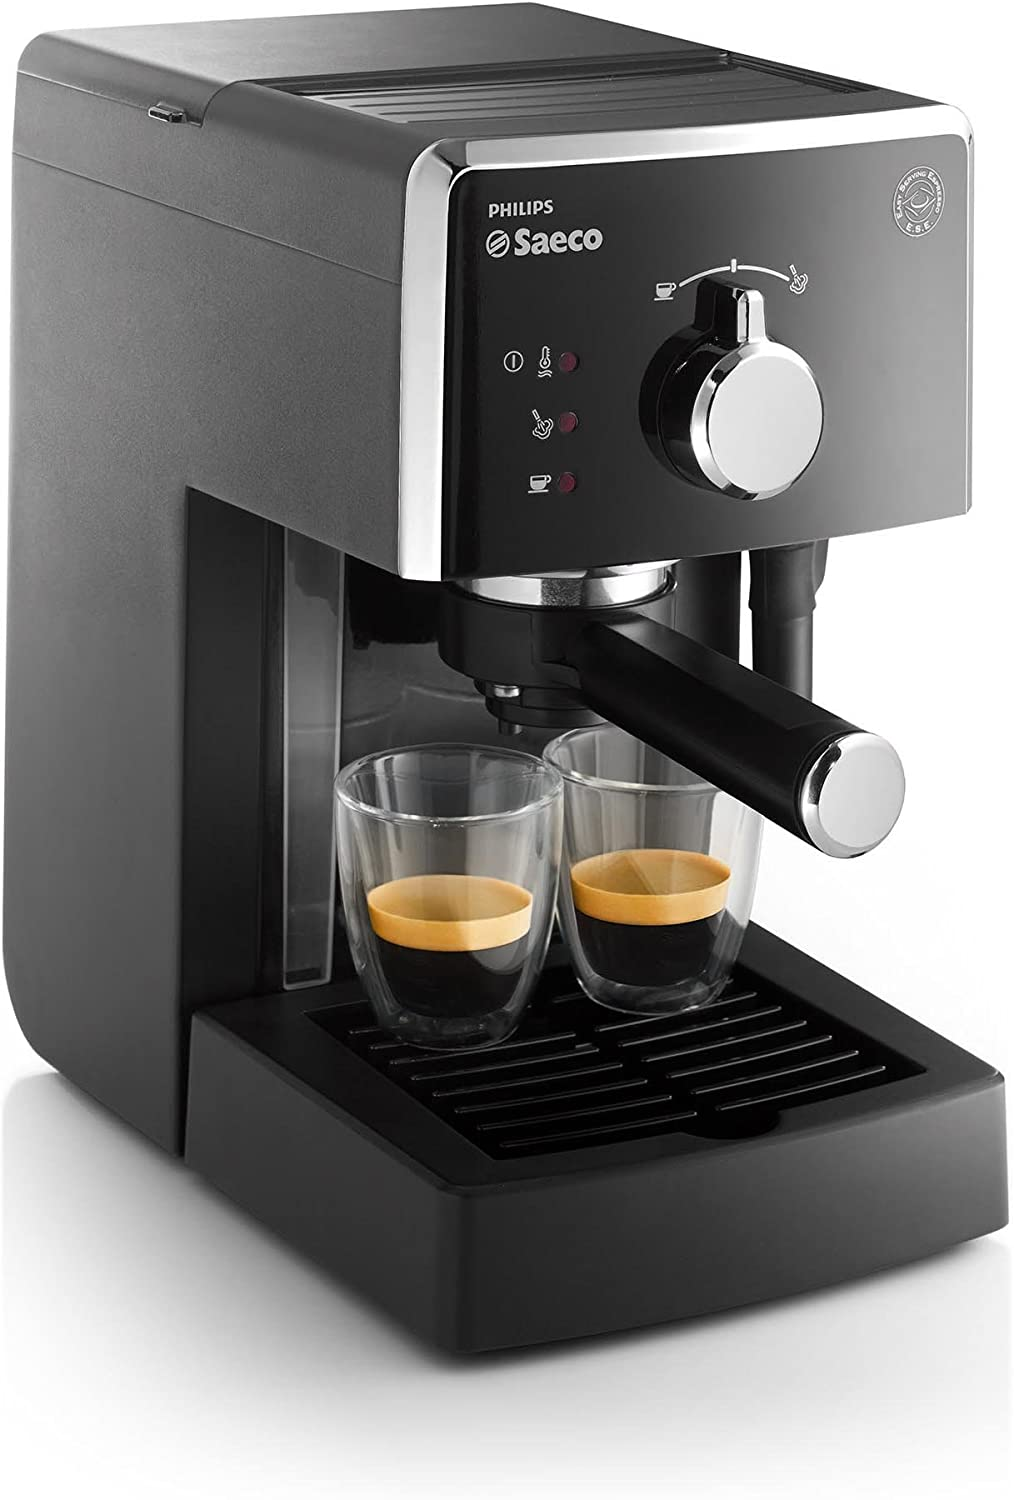 Saeco HD8423/11 - Máquina de café espresso manual, 950 W, color ...